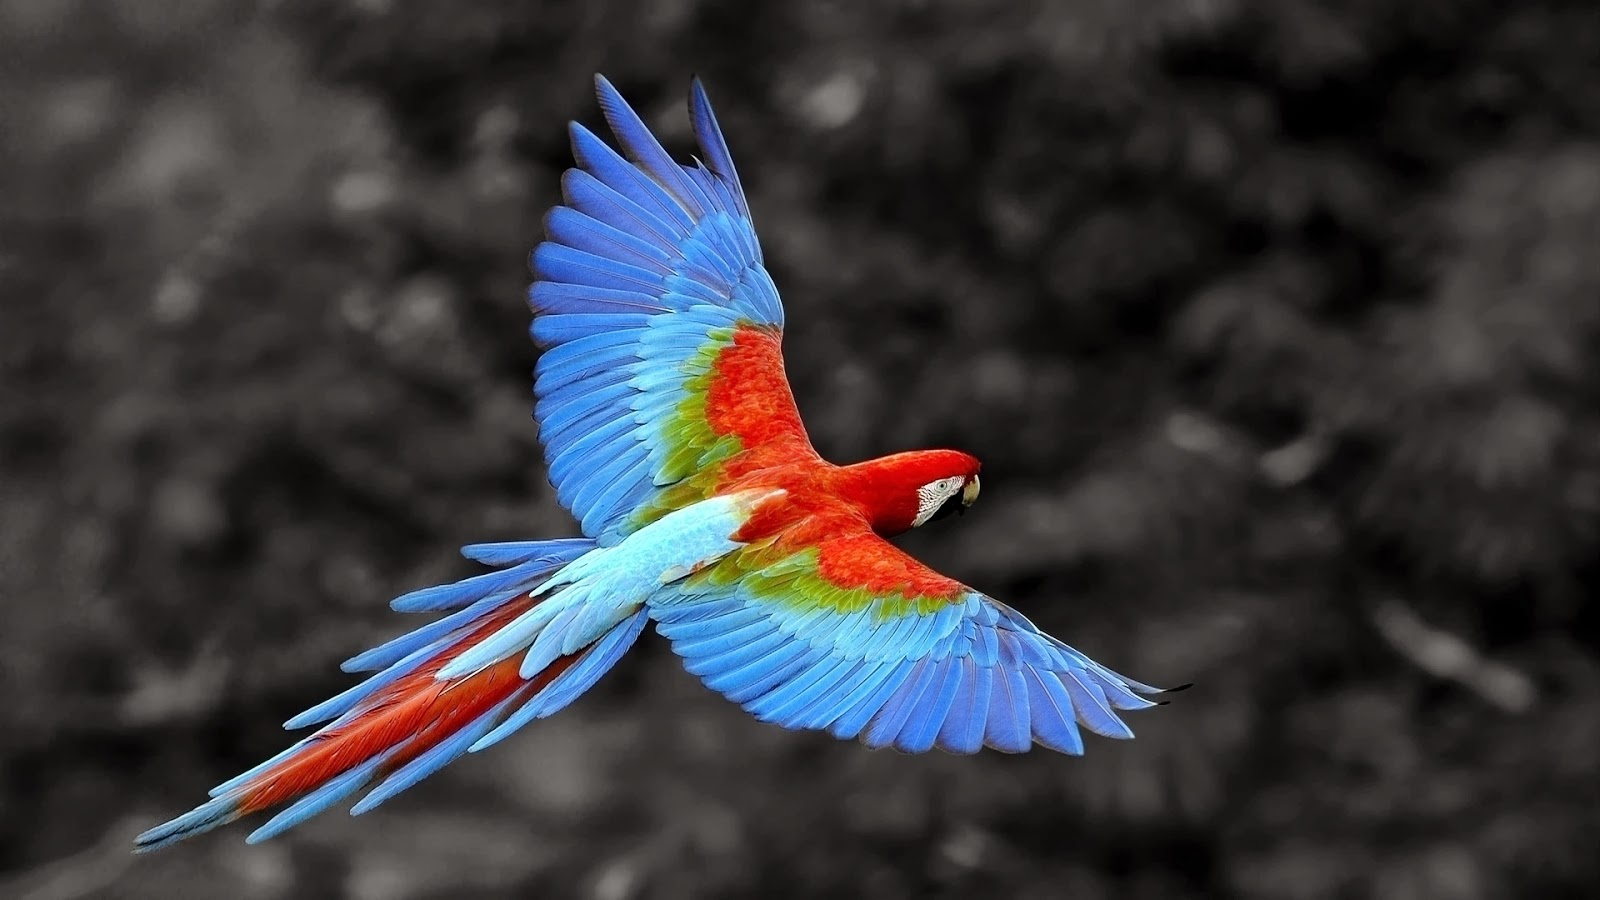 Cute Cute Hd Wallpapers Best Pics Store Parrot Hd Wallpapers